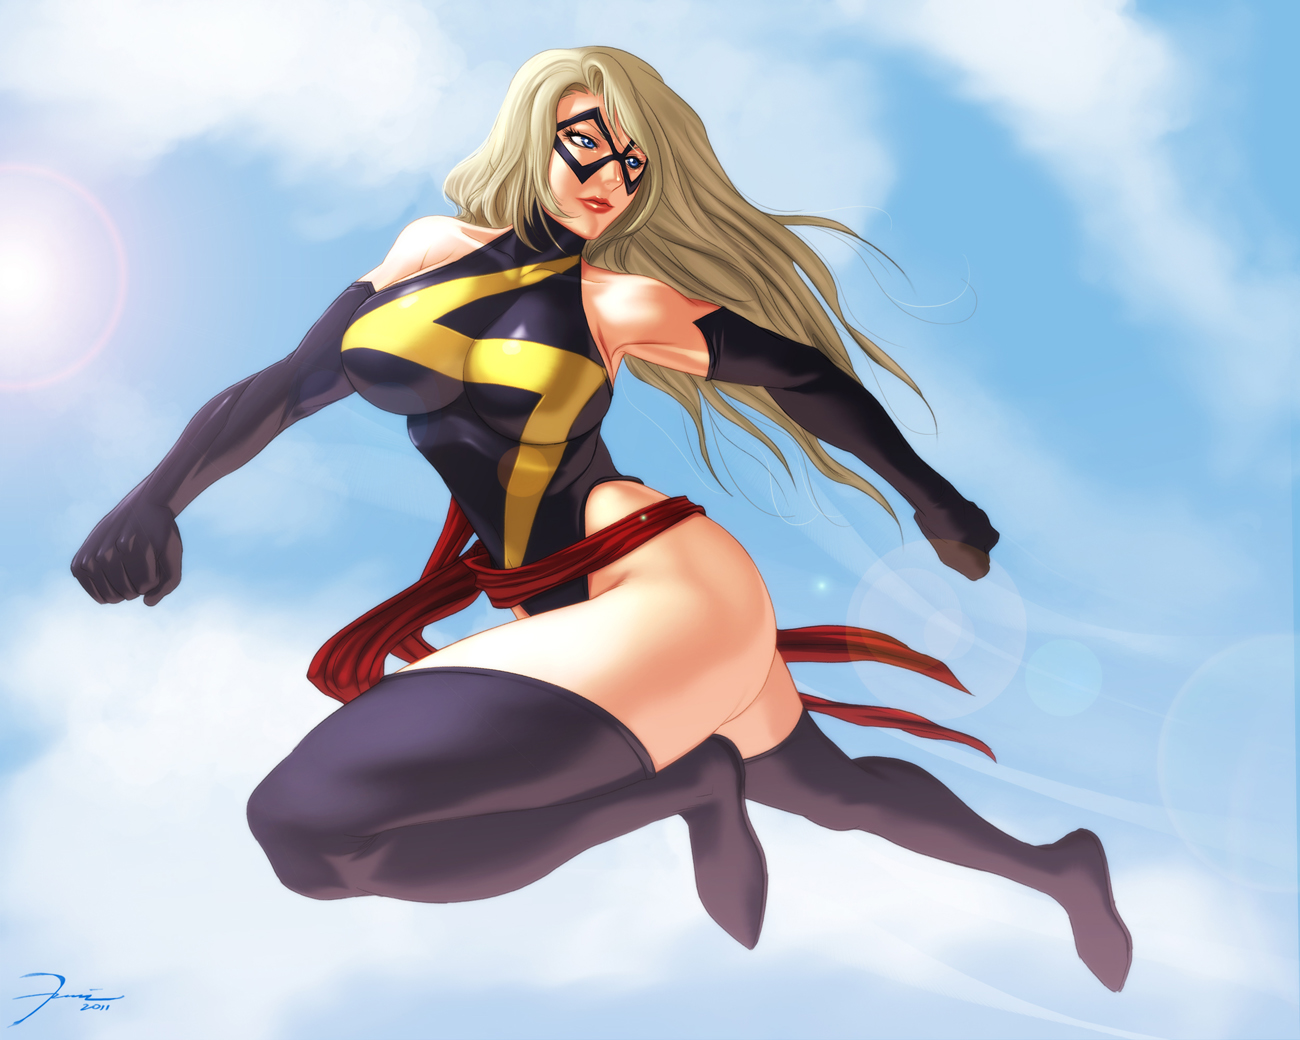 ms_marvel_by_darkeyez07-d47v977.jpg